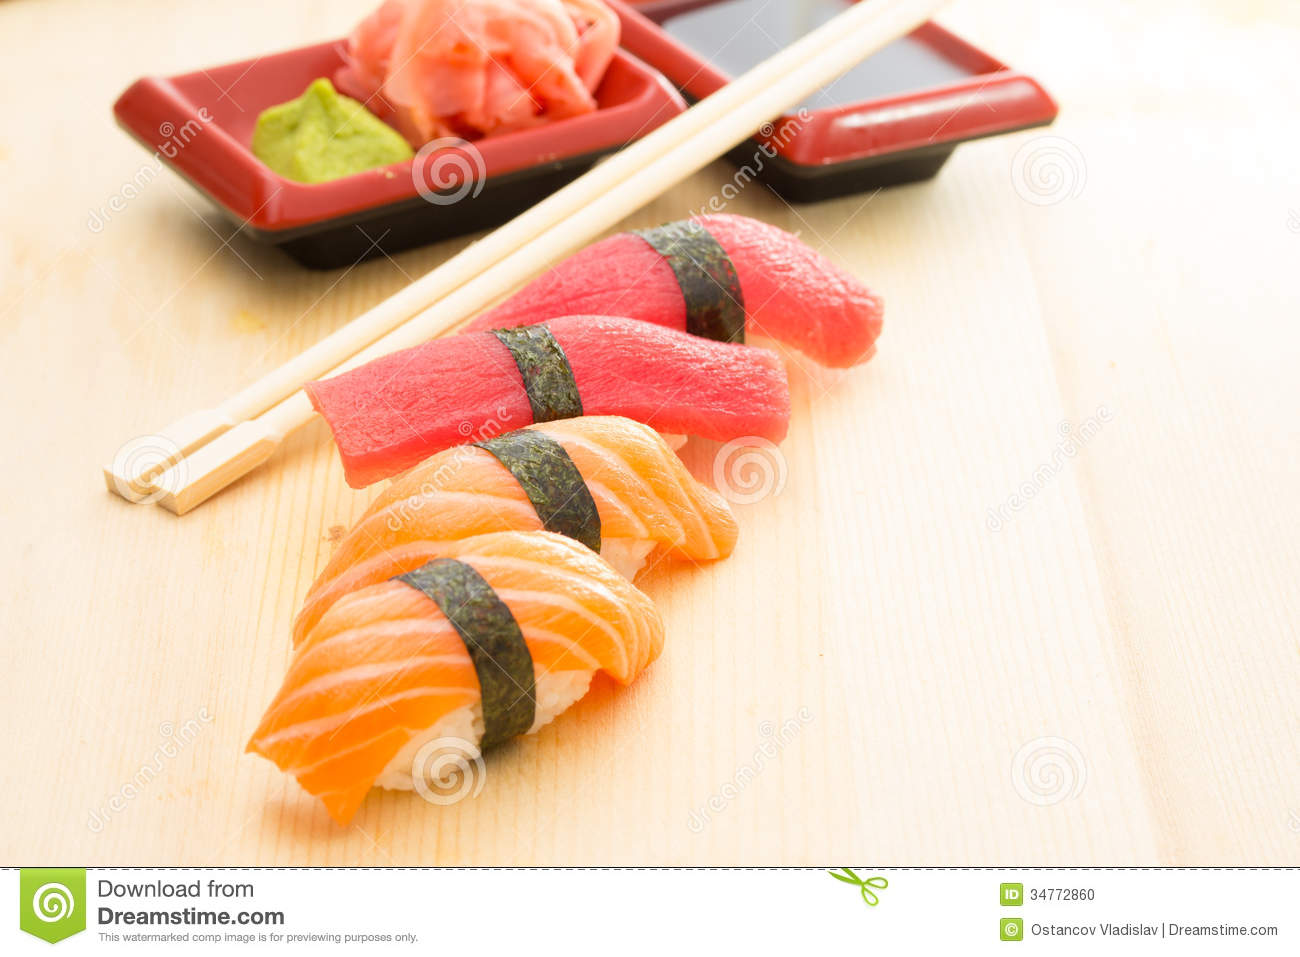 how to cut tuna for sushi nigiri